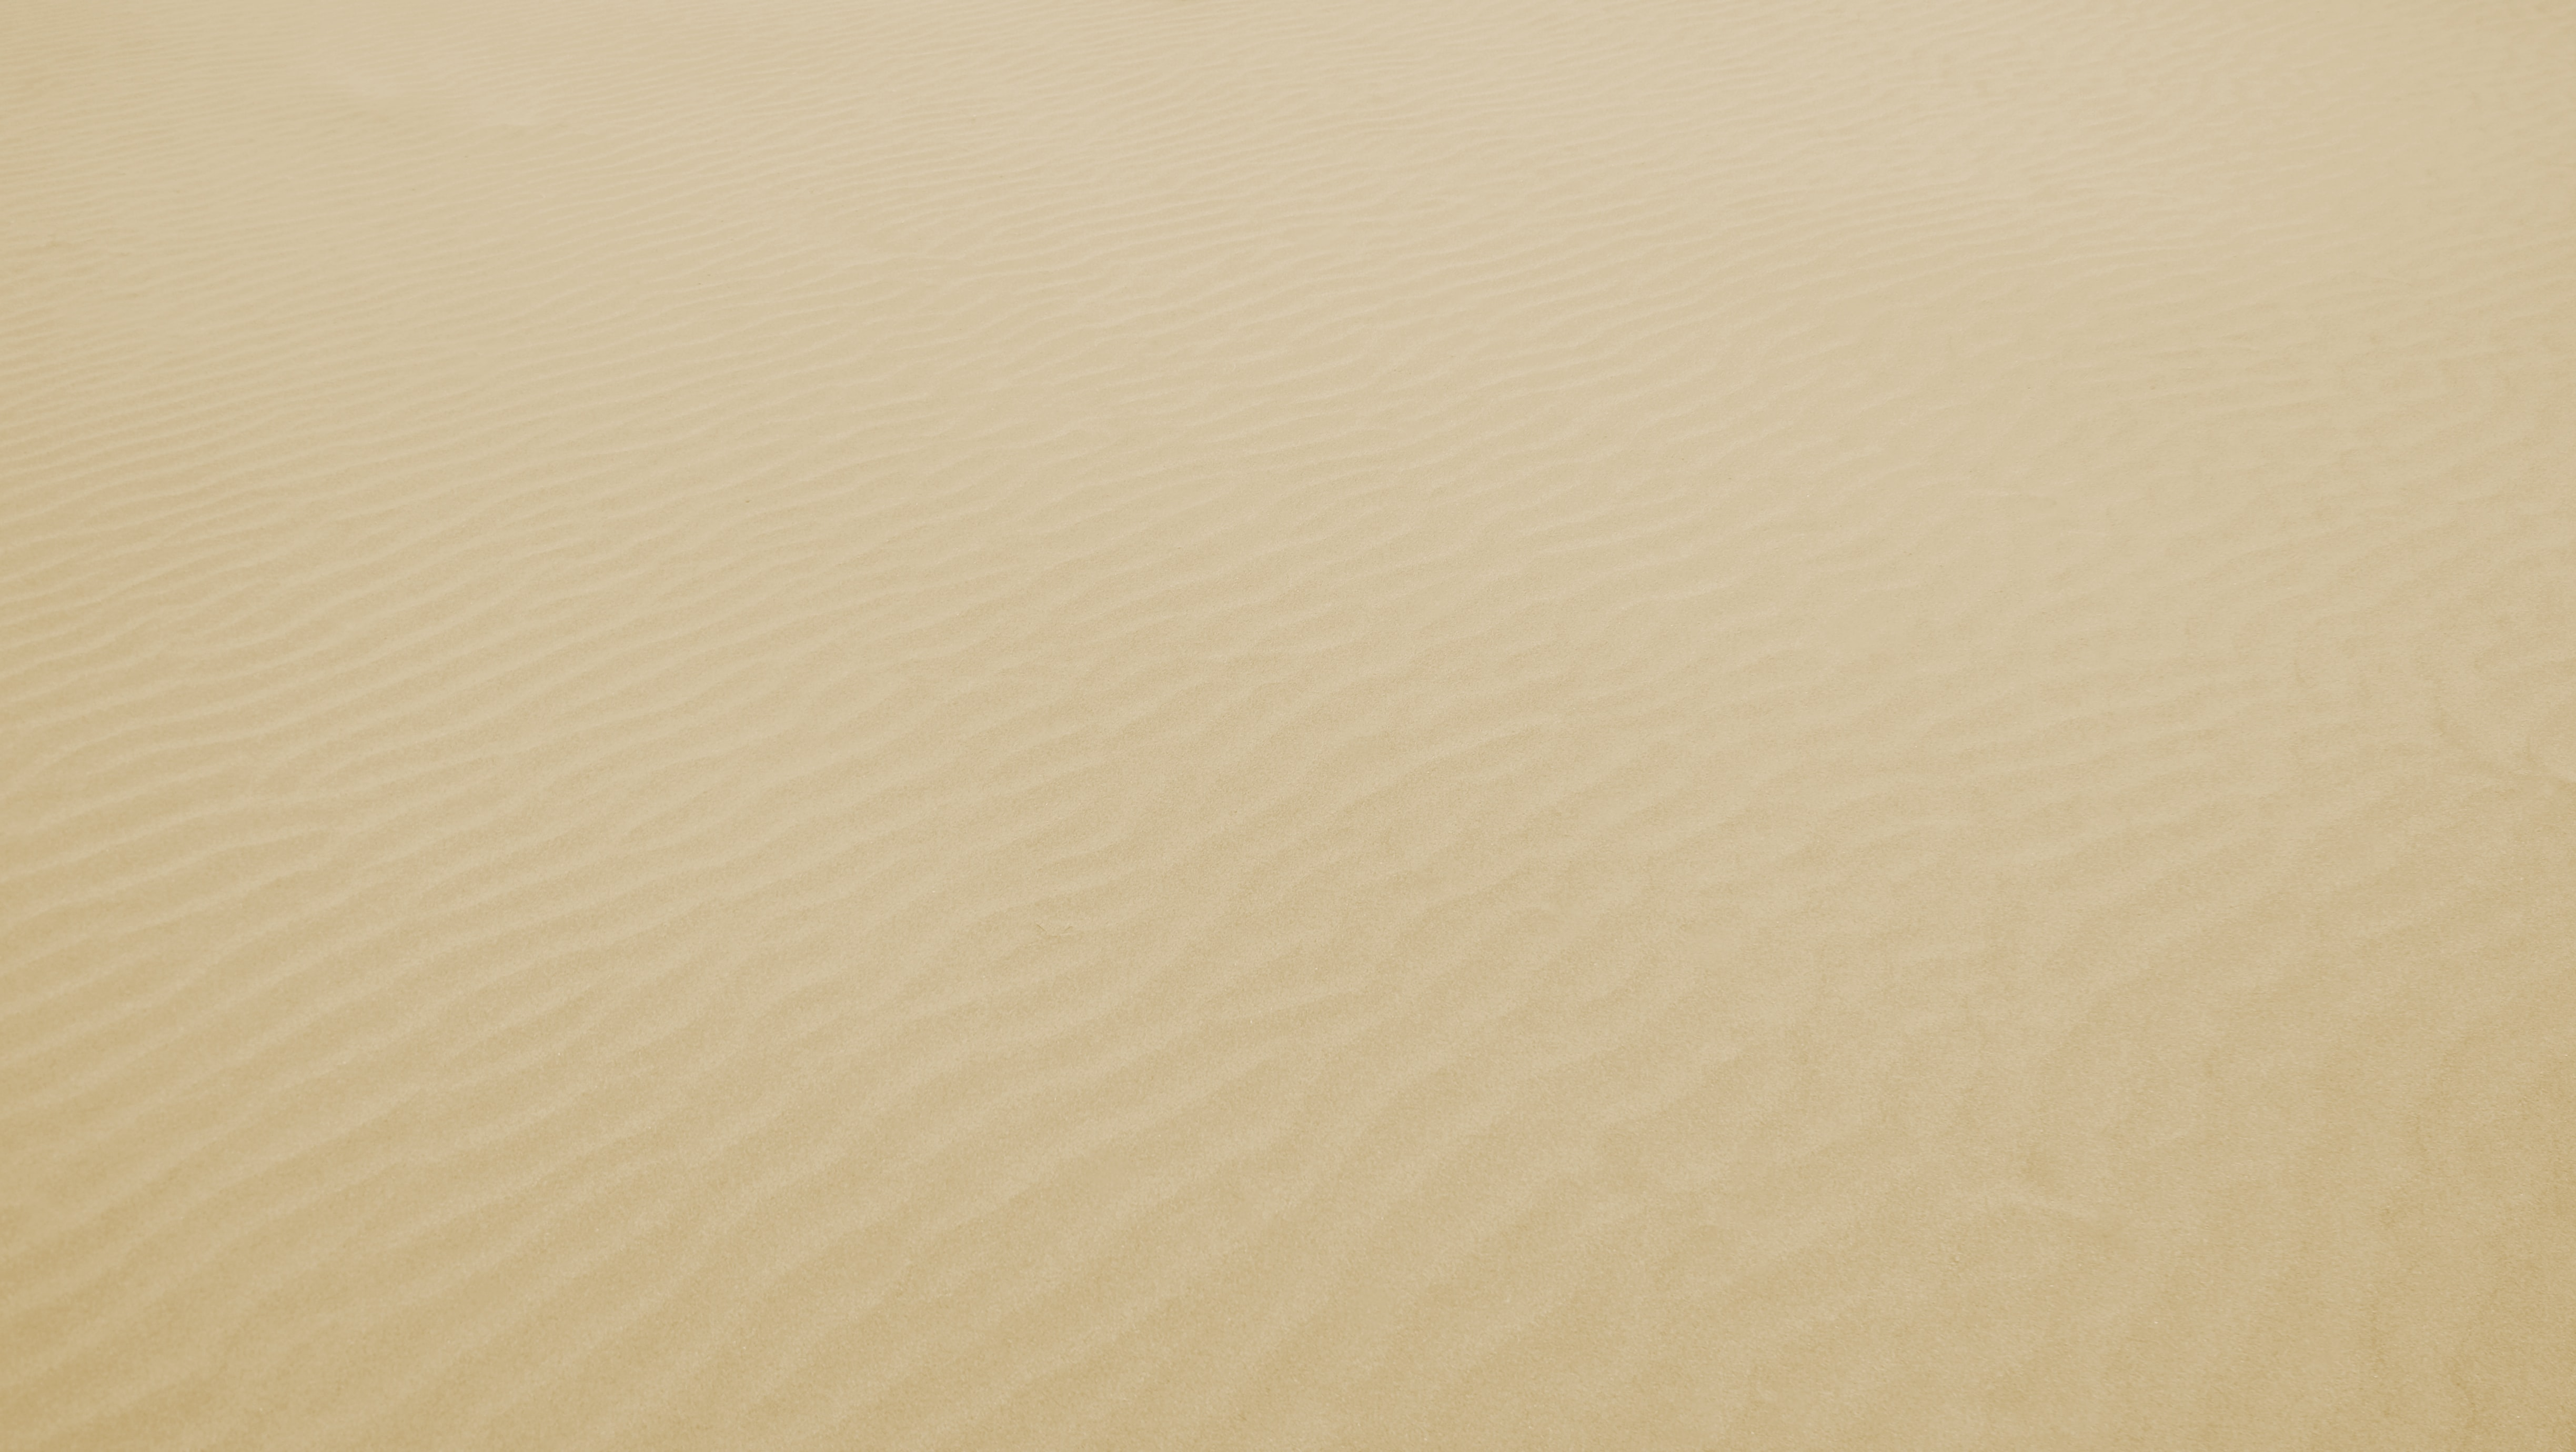 bird's eye view of desert